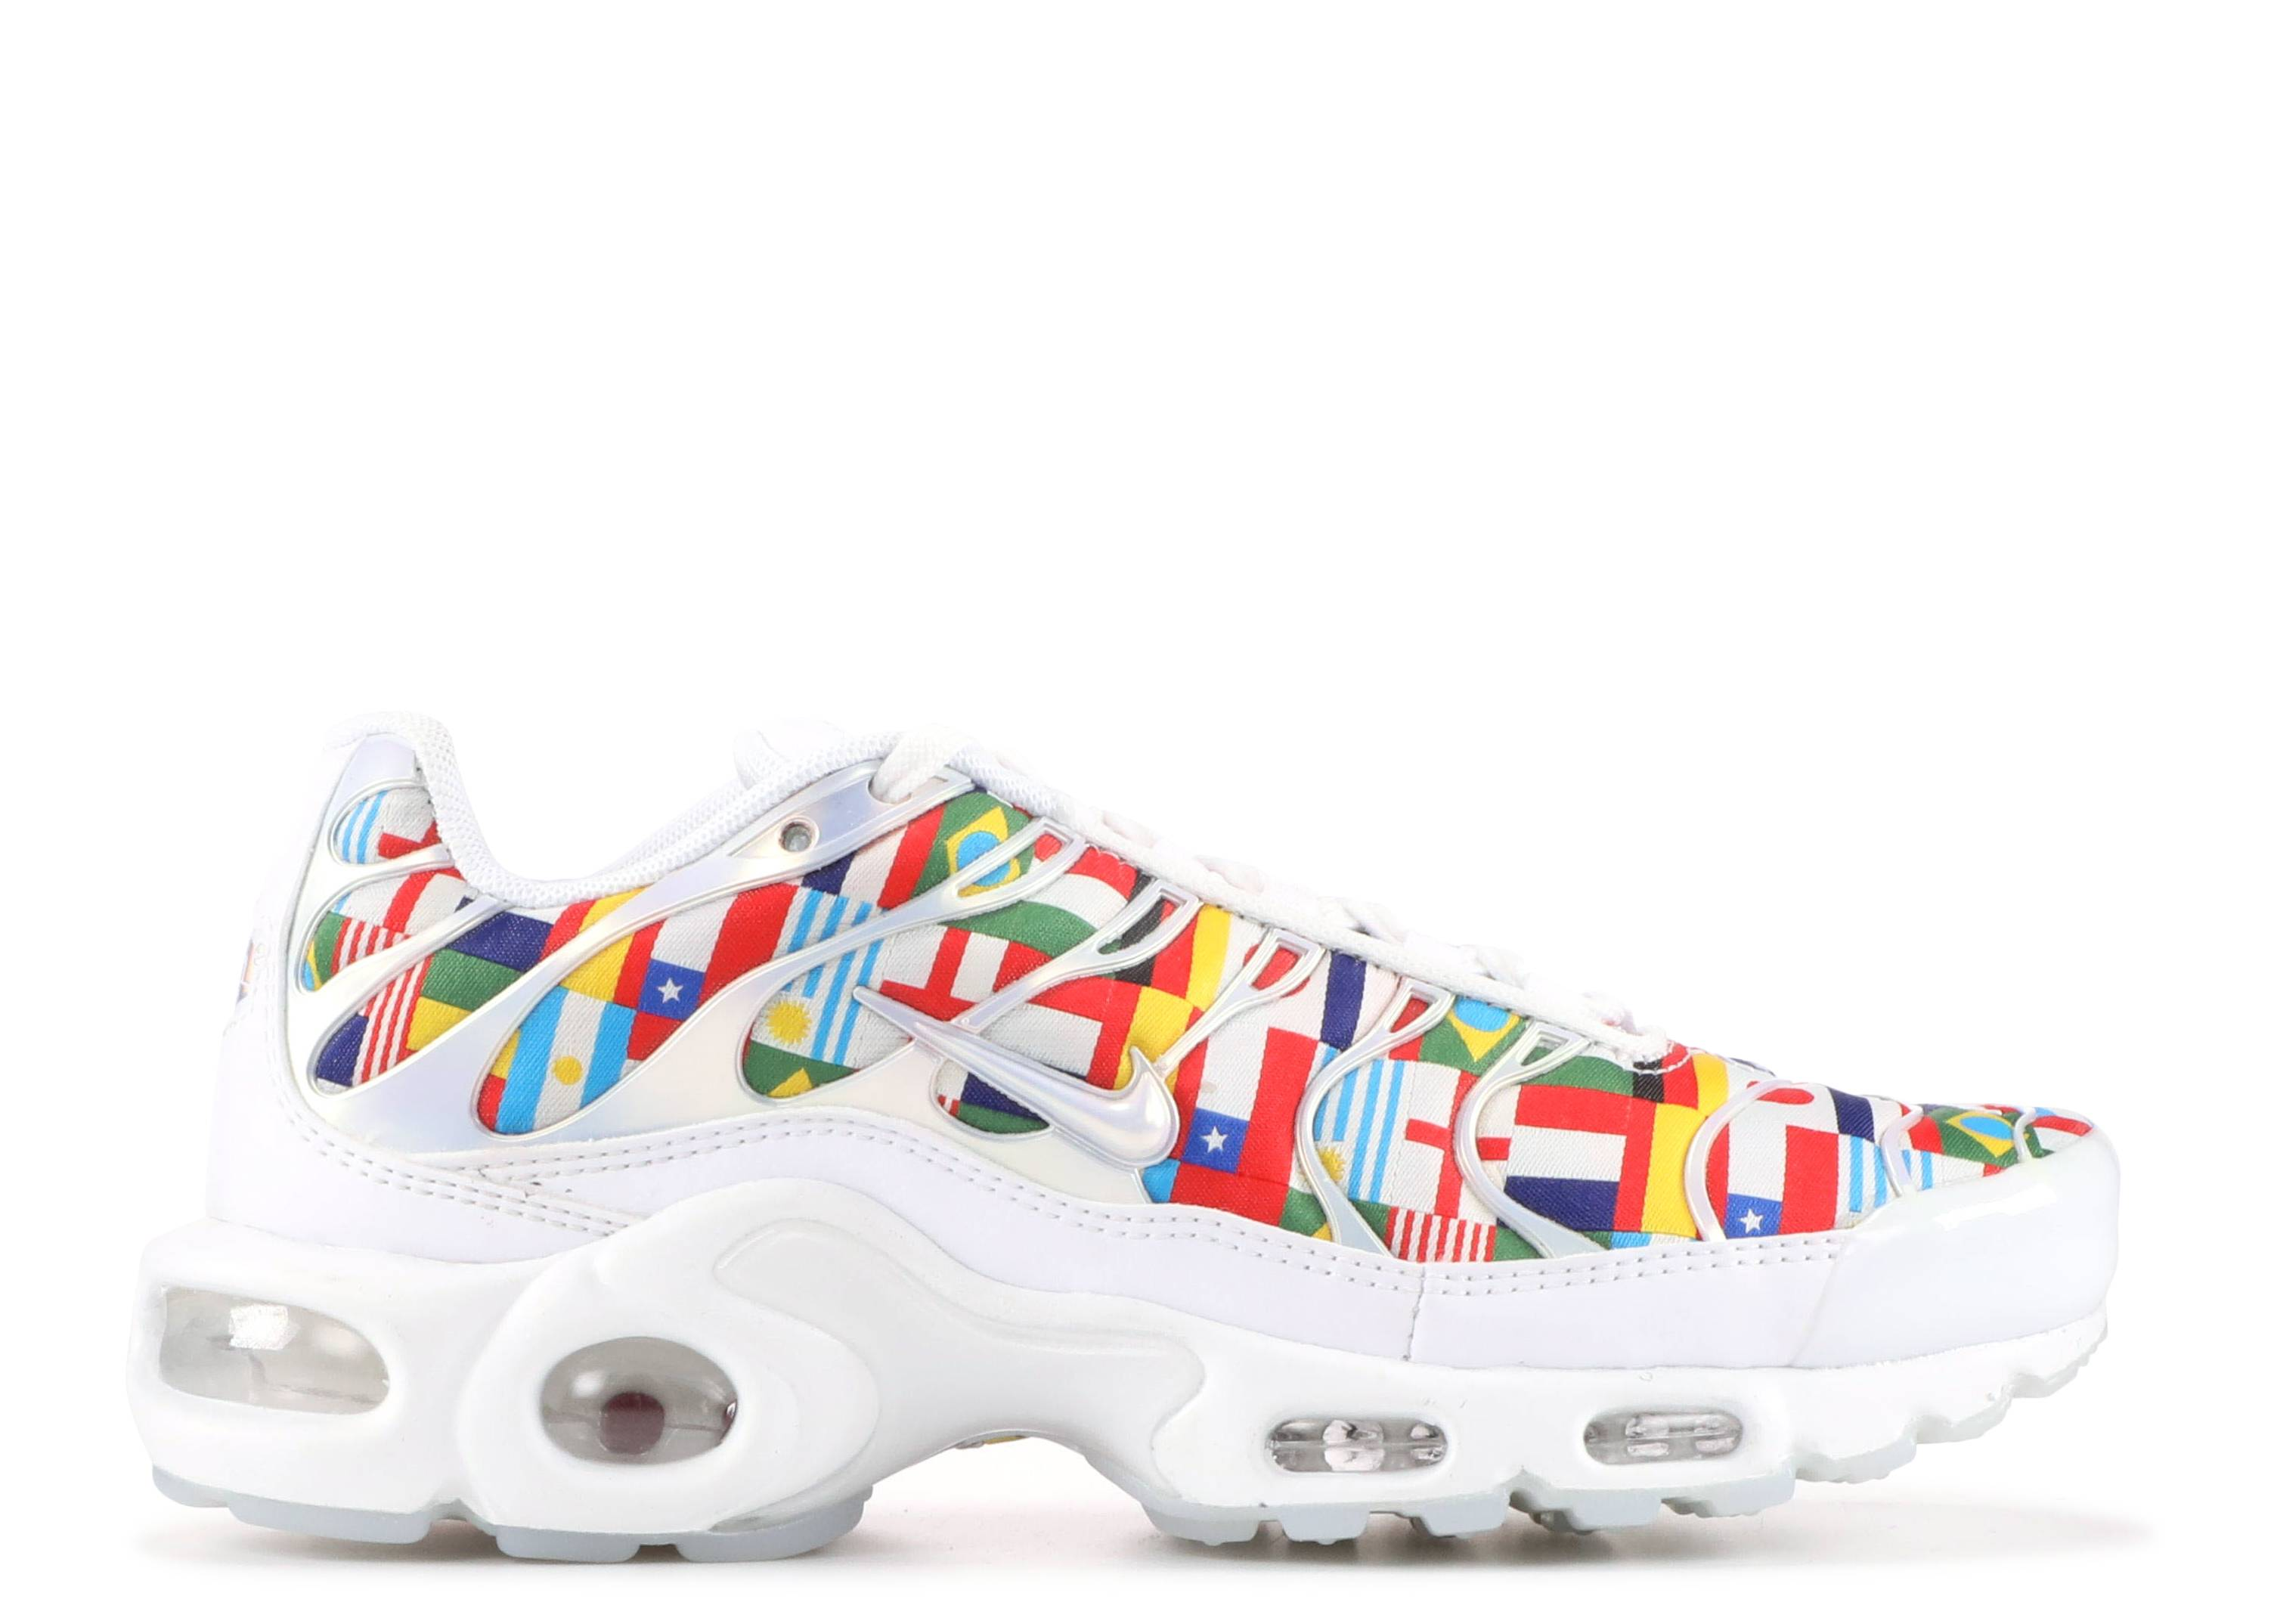 e367973a9b830 Air Max Plus Nic Qs - Nike - ao5117 100 - white/multi-color | Flight ...